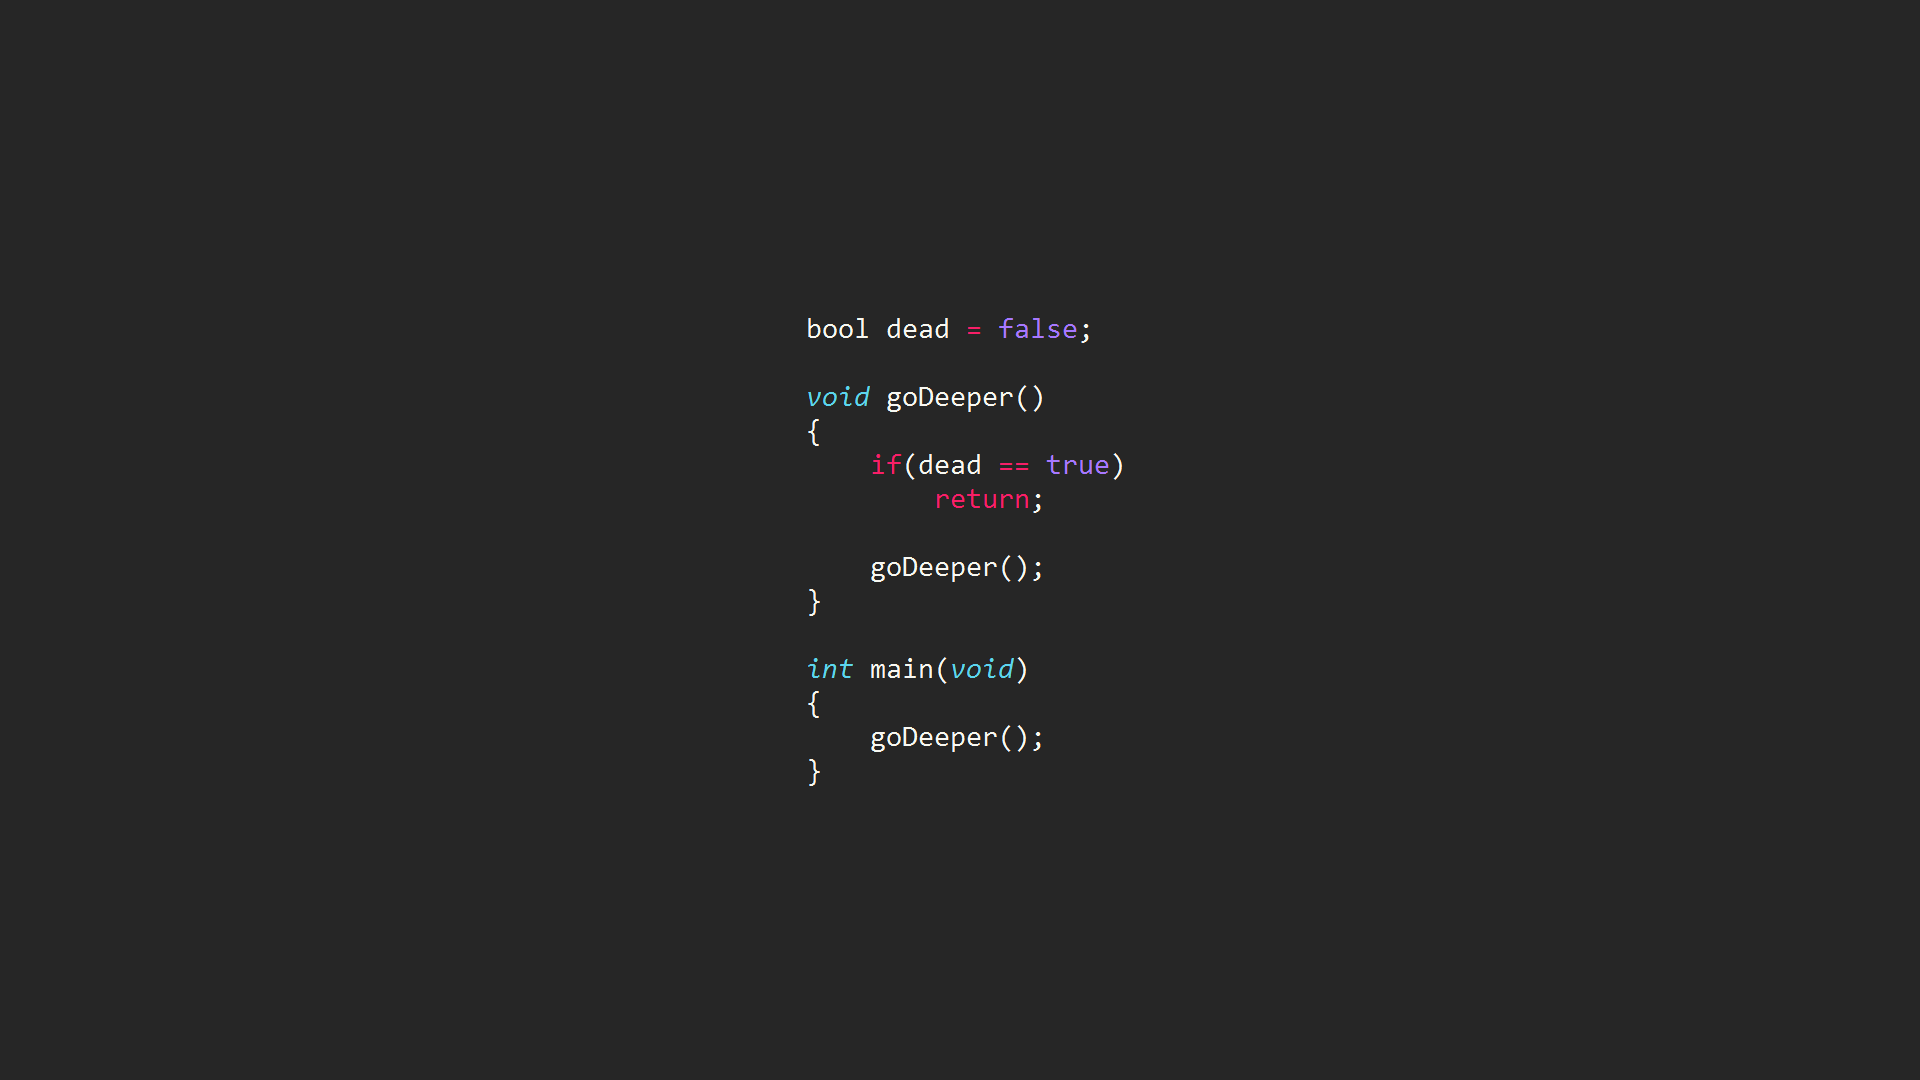 code computer syntax highlighting Inception programming programming 1920x1080